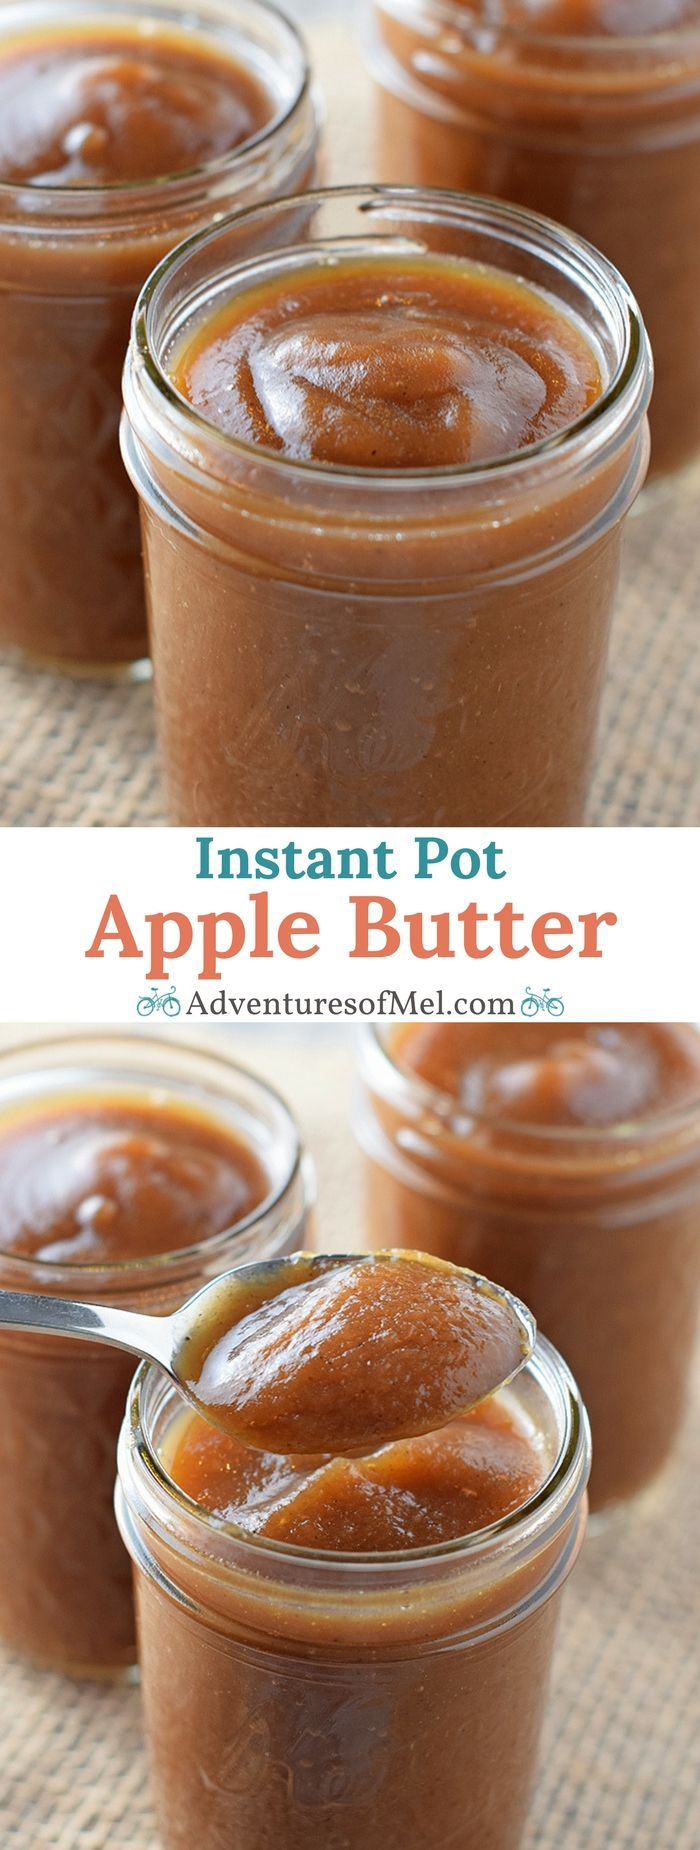 Instant Pot Apple Butter, filled with the delicious